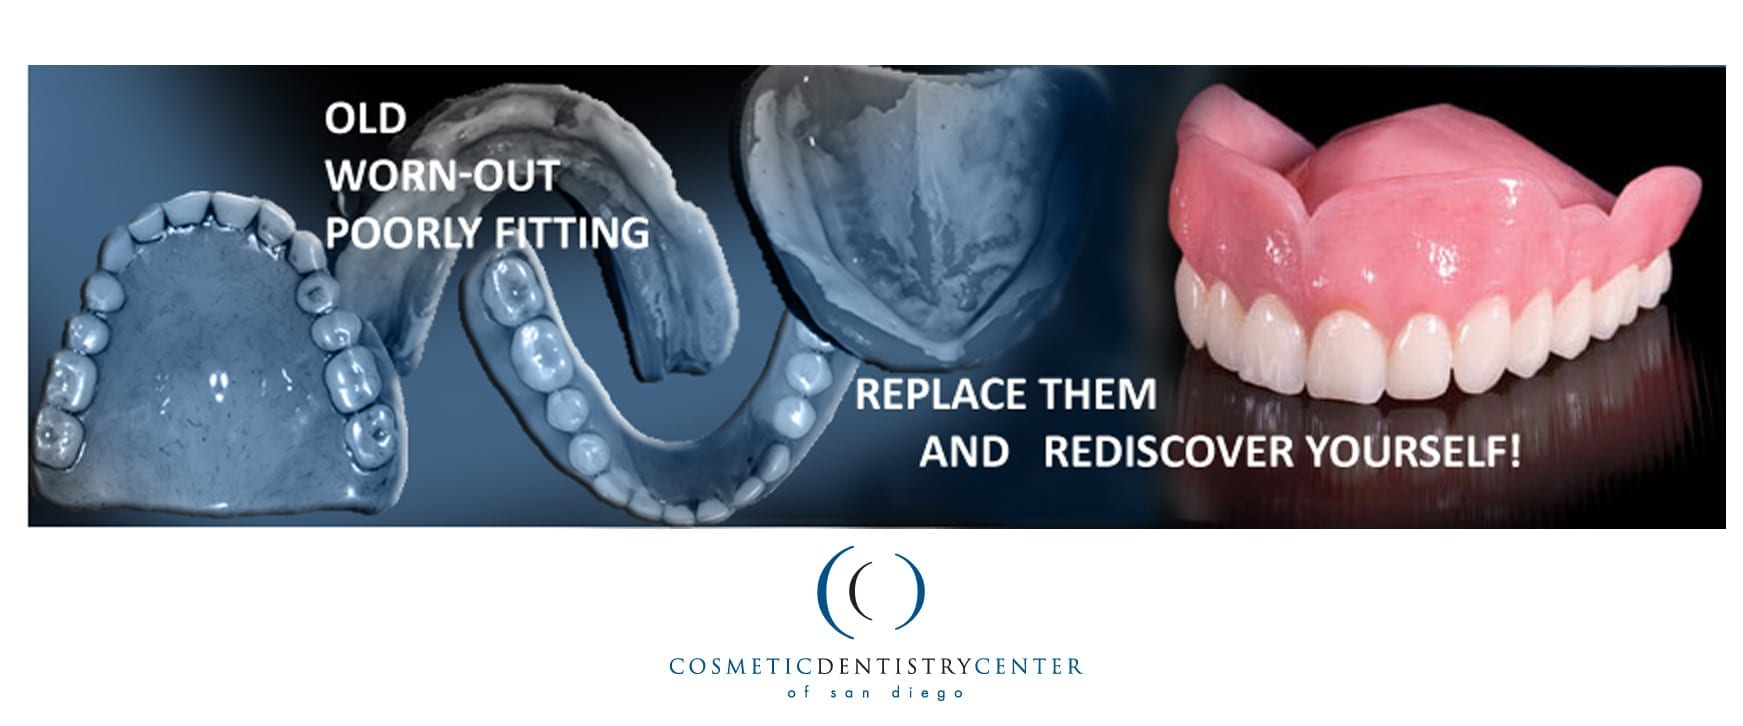 Immediate Dentures Cosmetic Dentistry Center Of San Diego